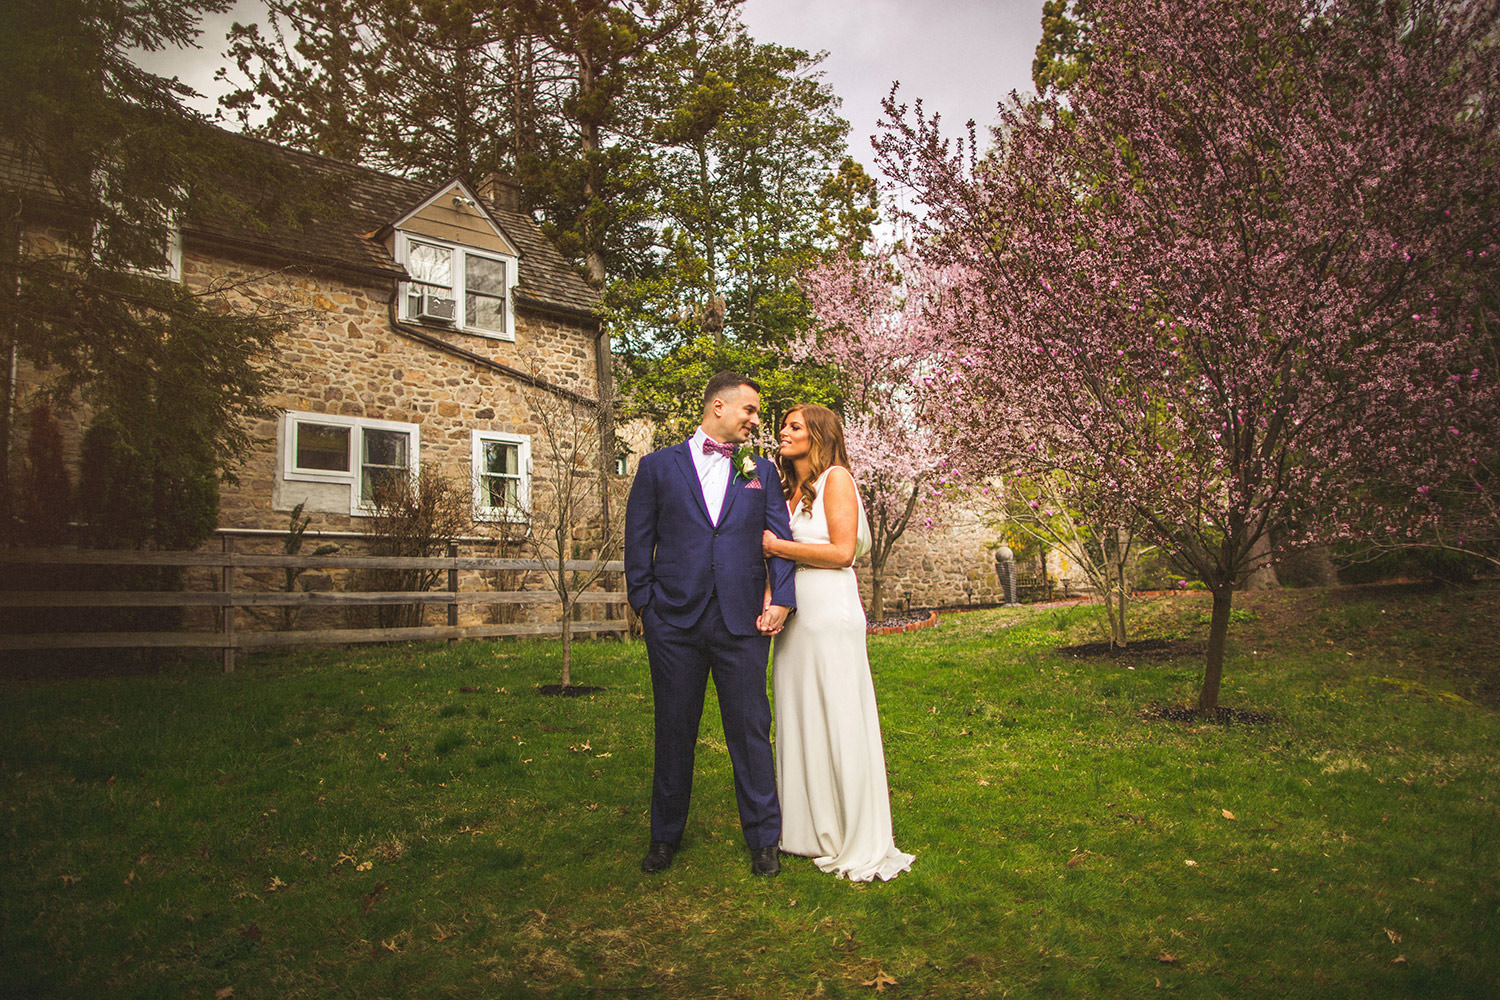 Kathleen & Adam - HollyHedge Estate WeddingNew Hope, PA